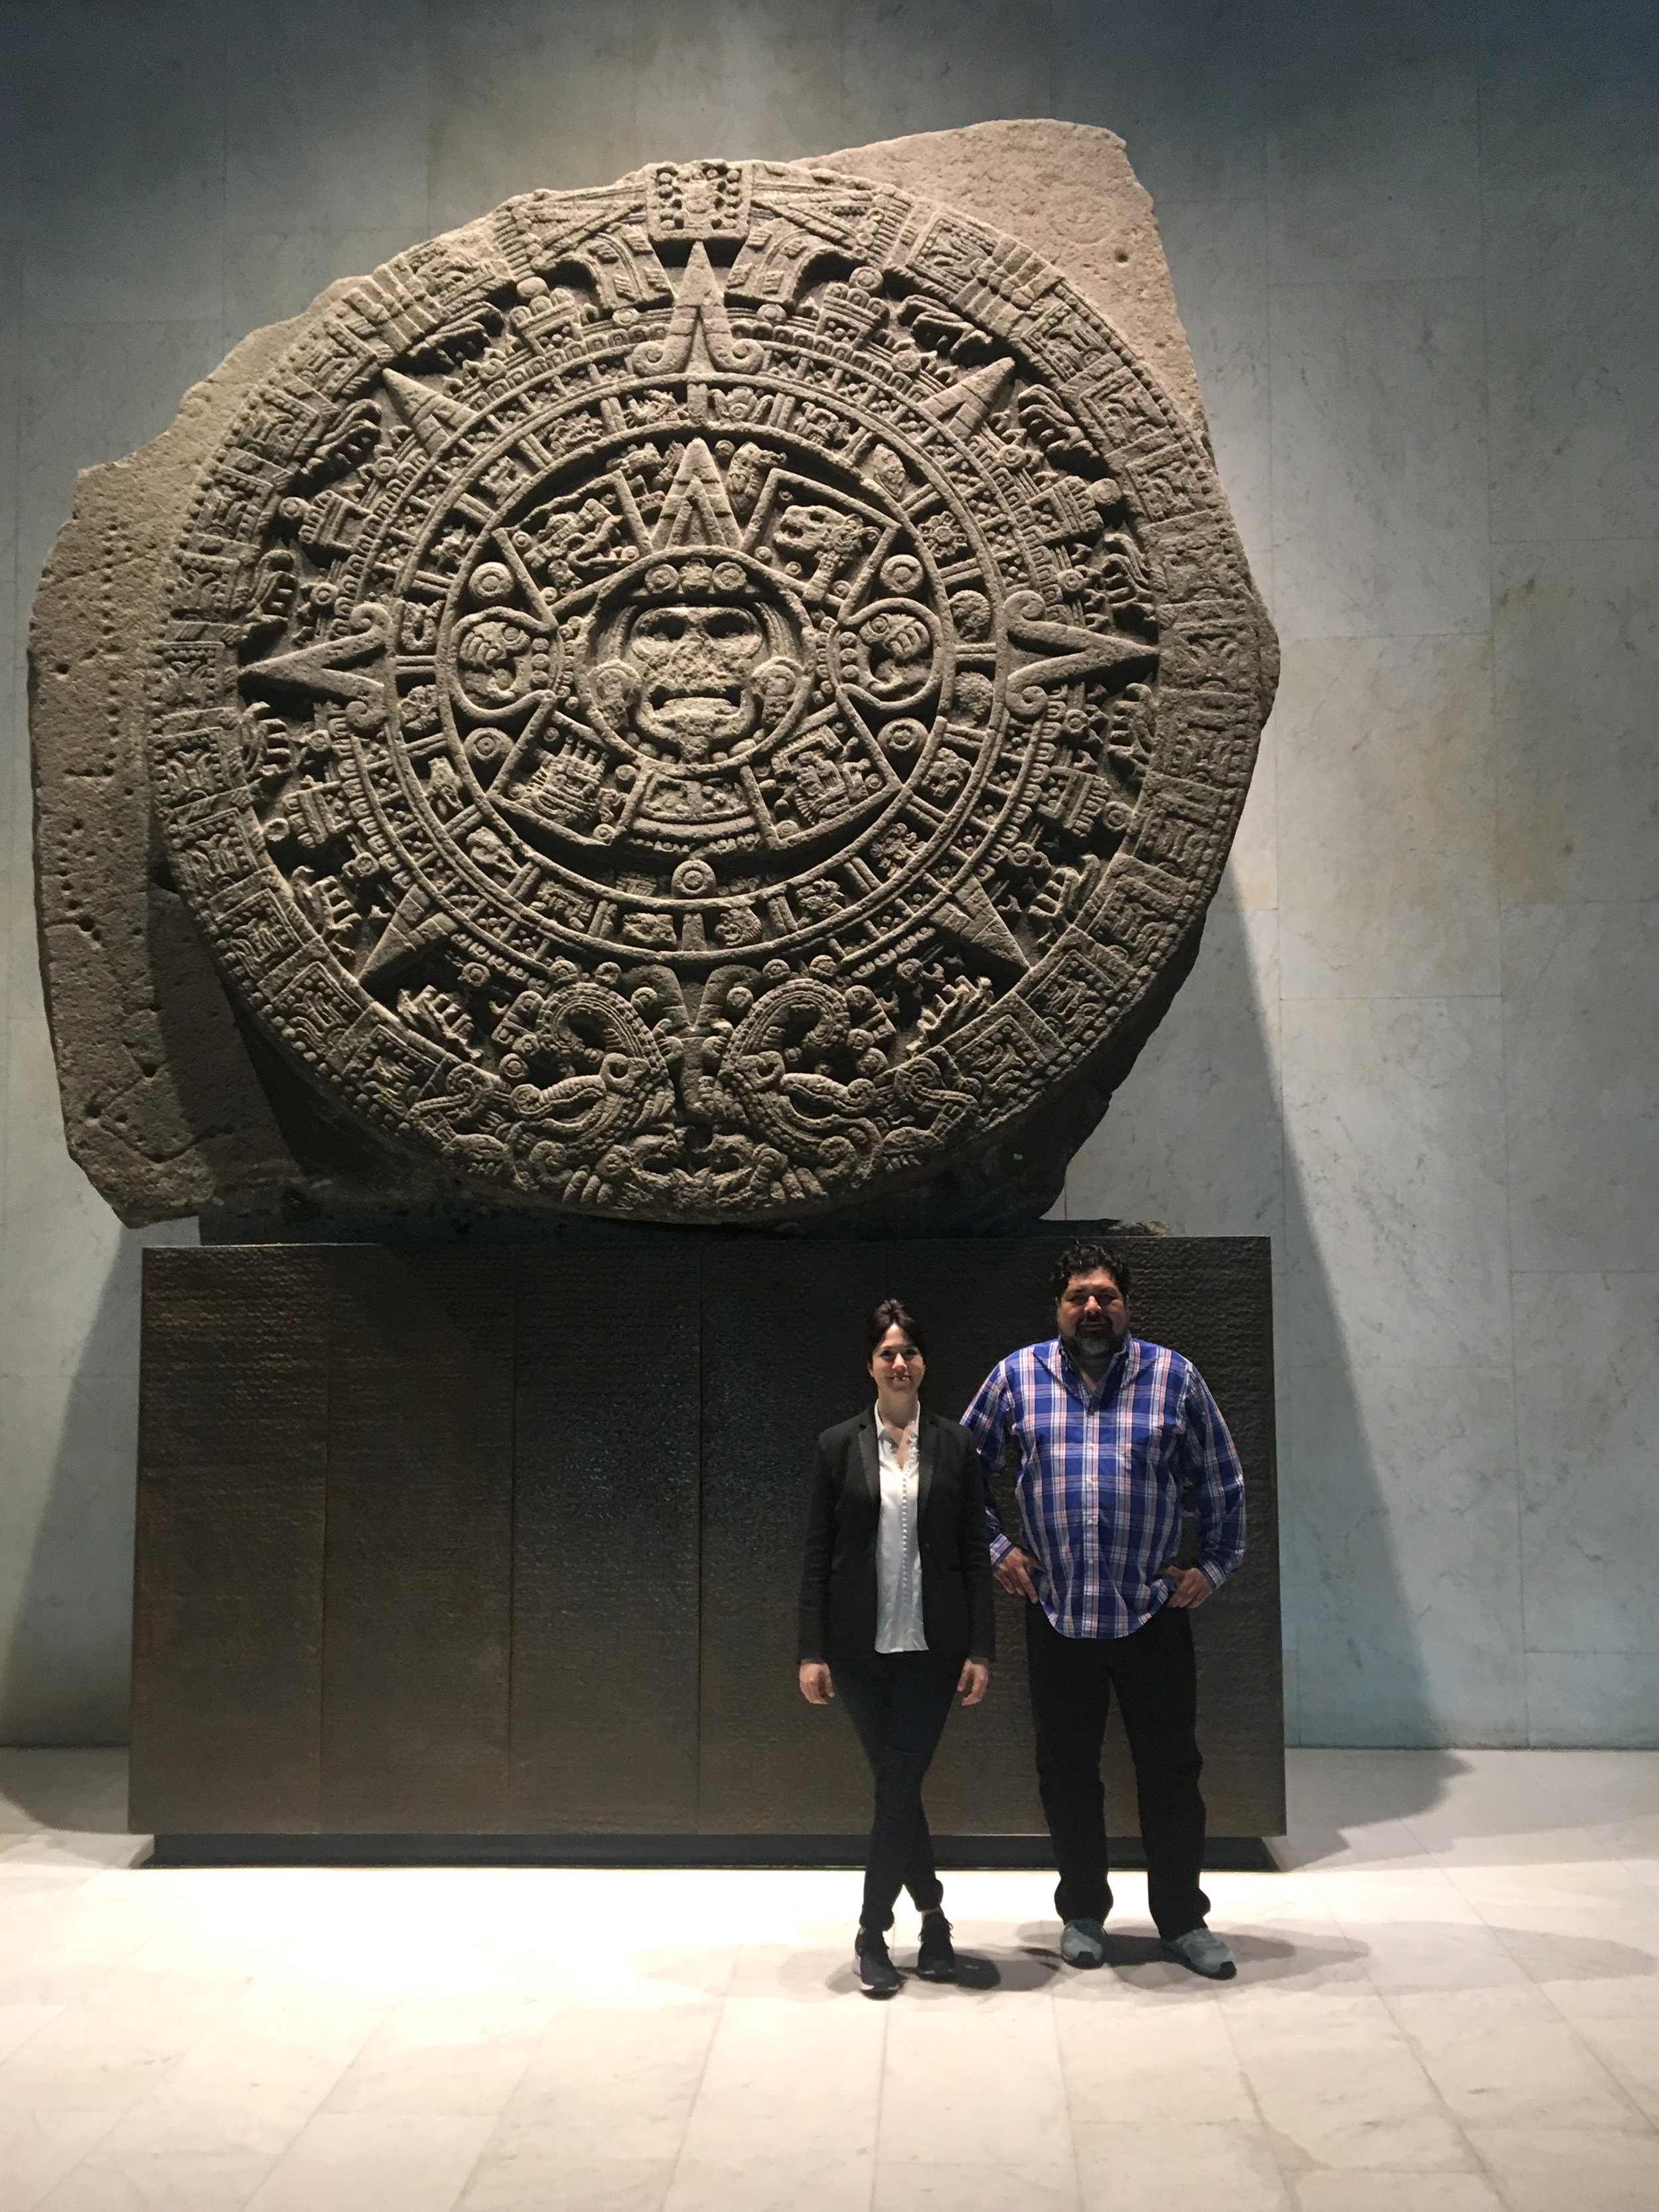 Hilary and Arturo at the National Museum of Anthropology.